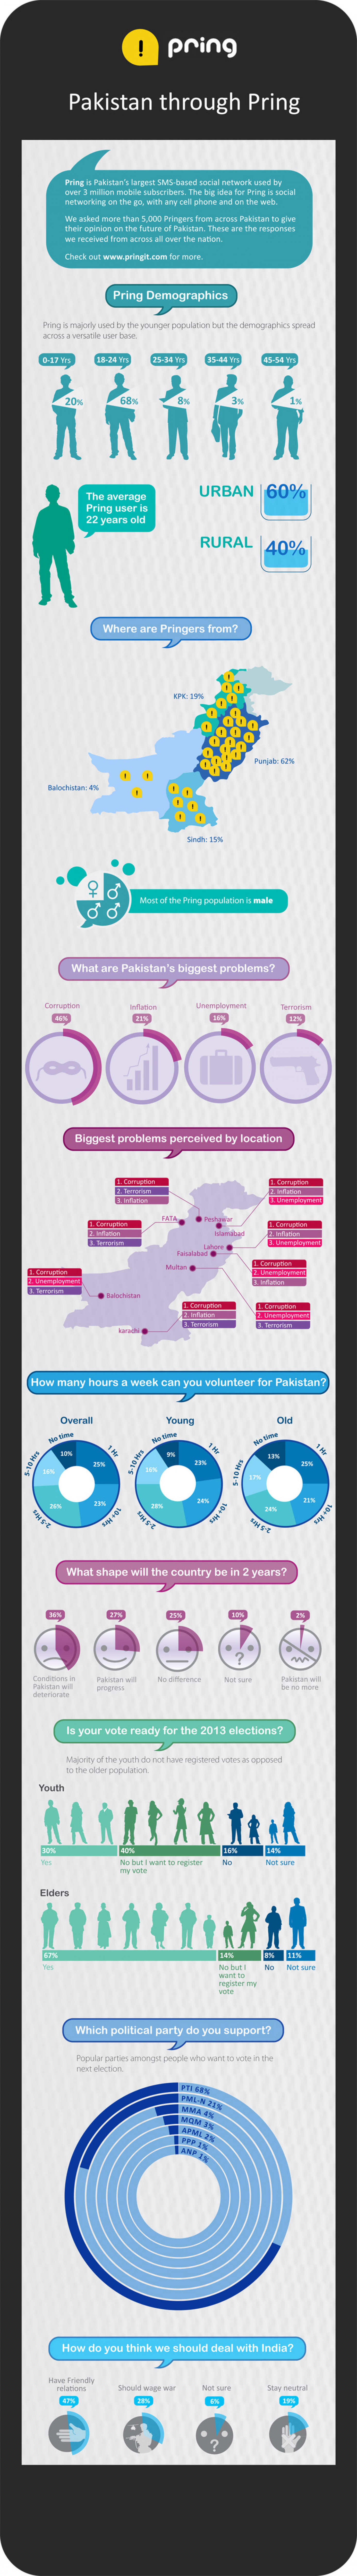 The Future of Pakistan by Pringers Infographic